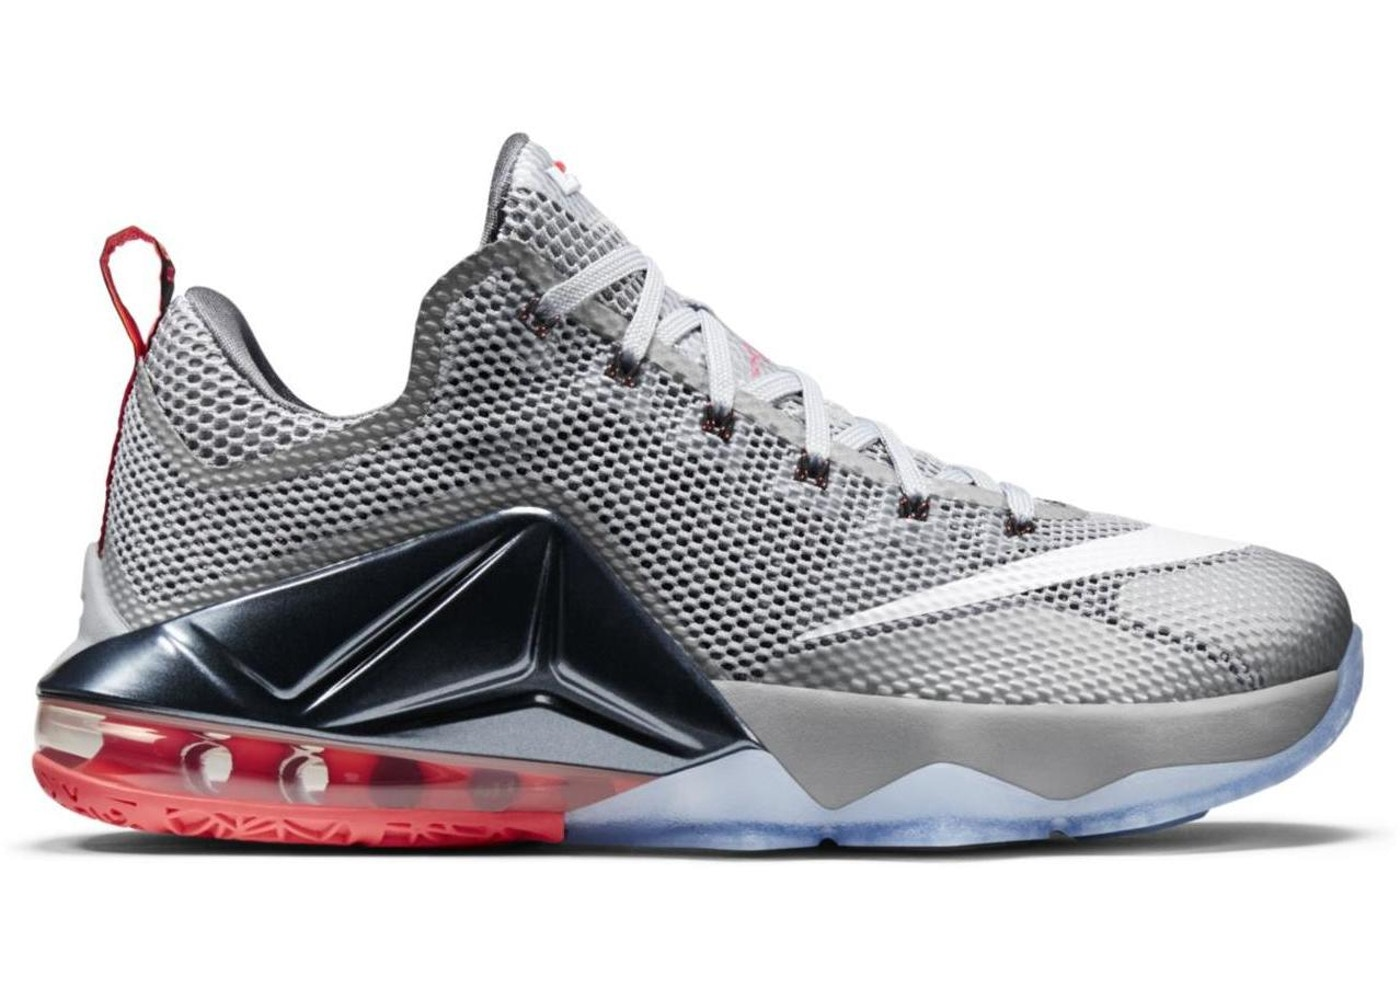 83c0f389e01d LeBron 12 Low Earned - 724557-014